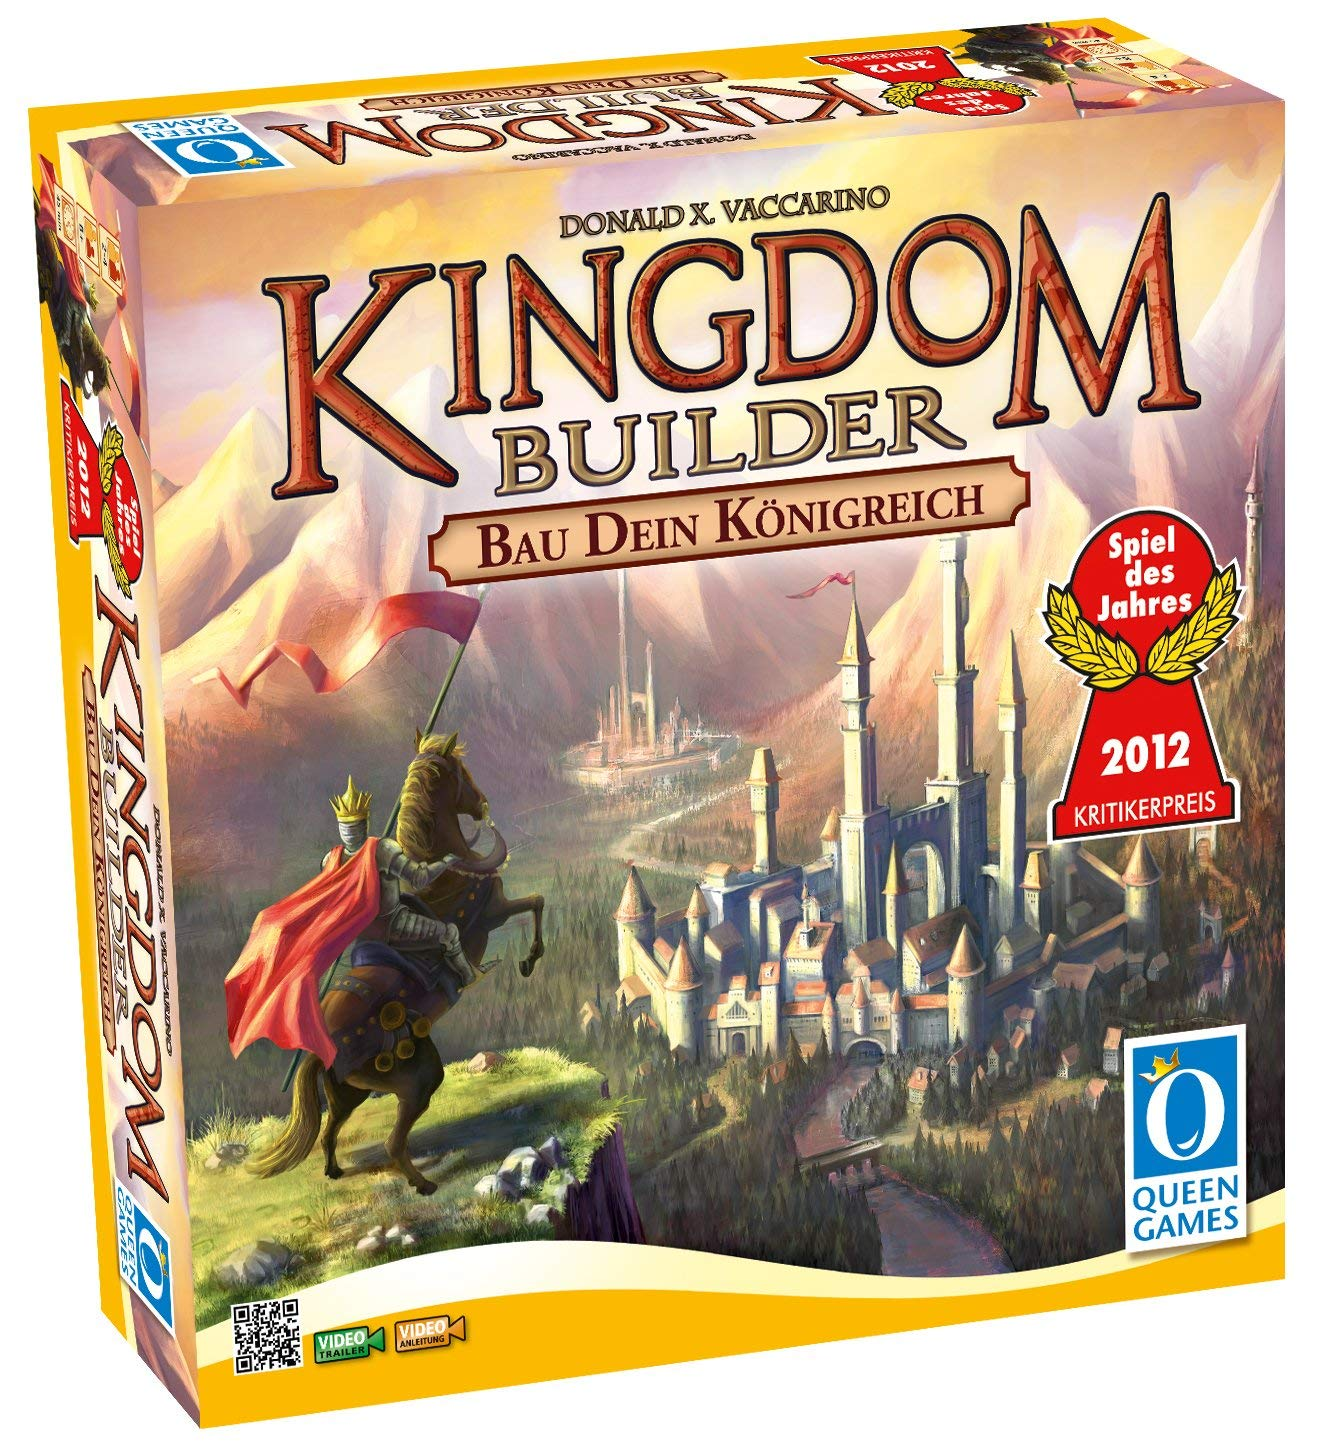 Kingdom Builder Queen Games amazon